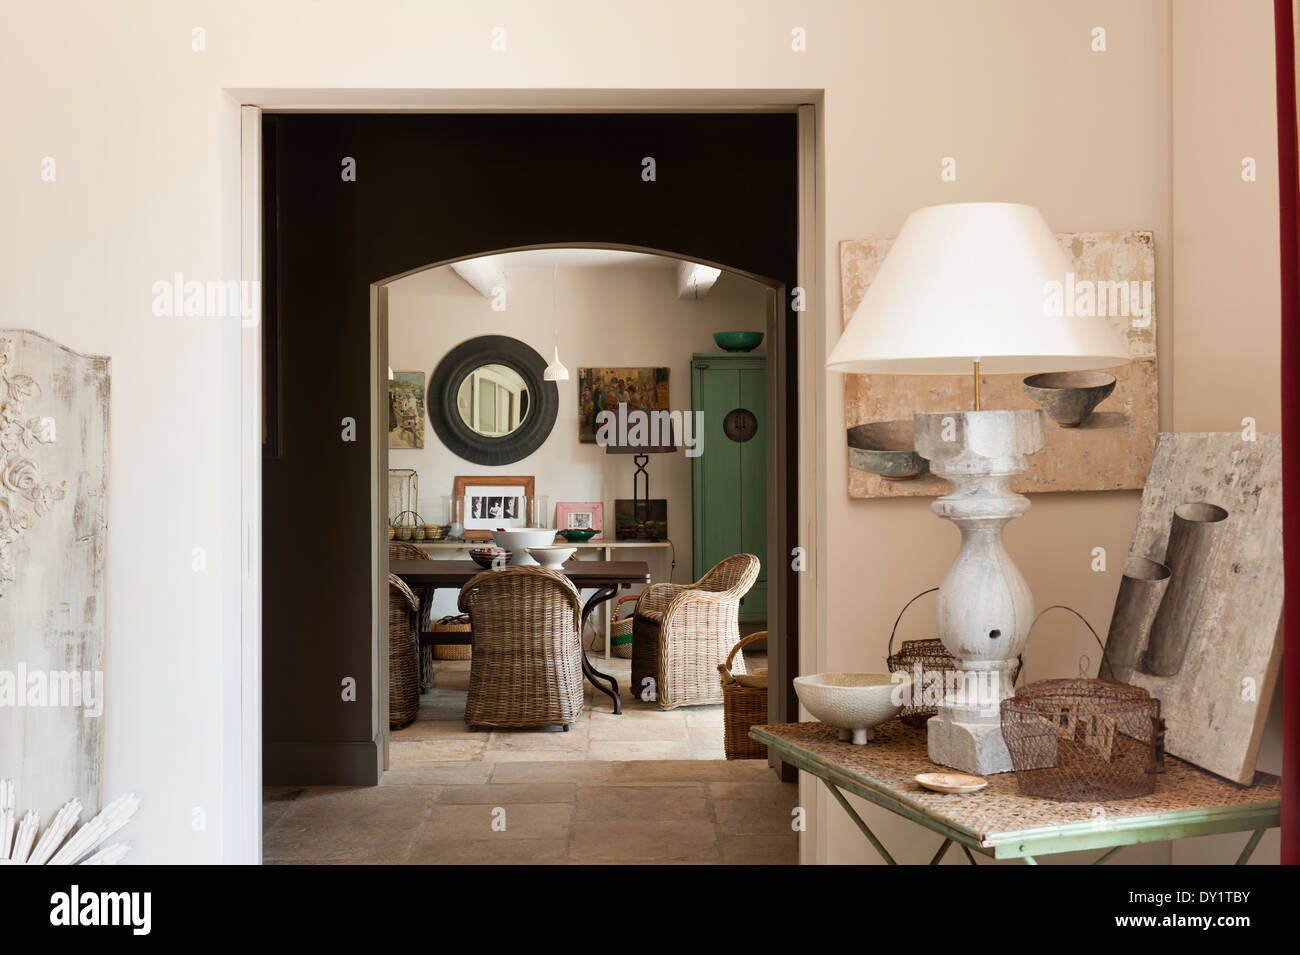 View from salon through to dining room with stone flooring. A stone lamp sits on a wrought iron folding table in the corner - Stock Image